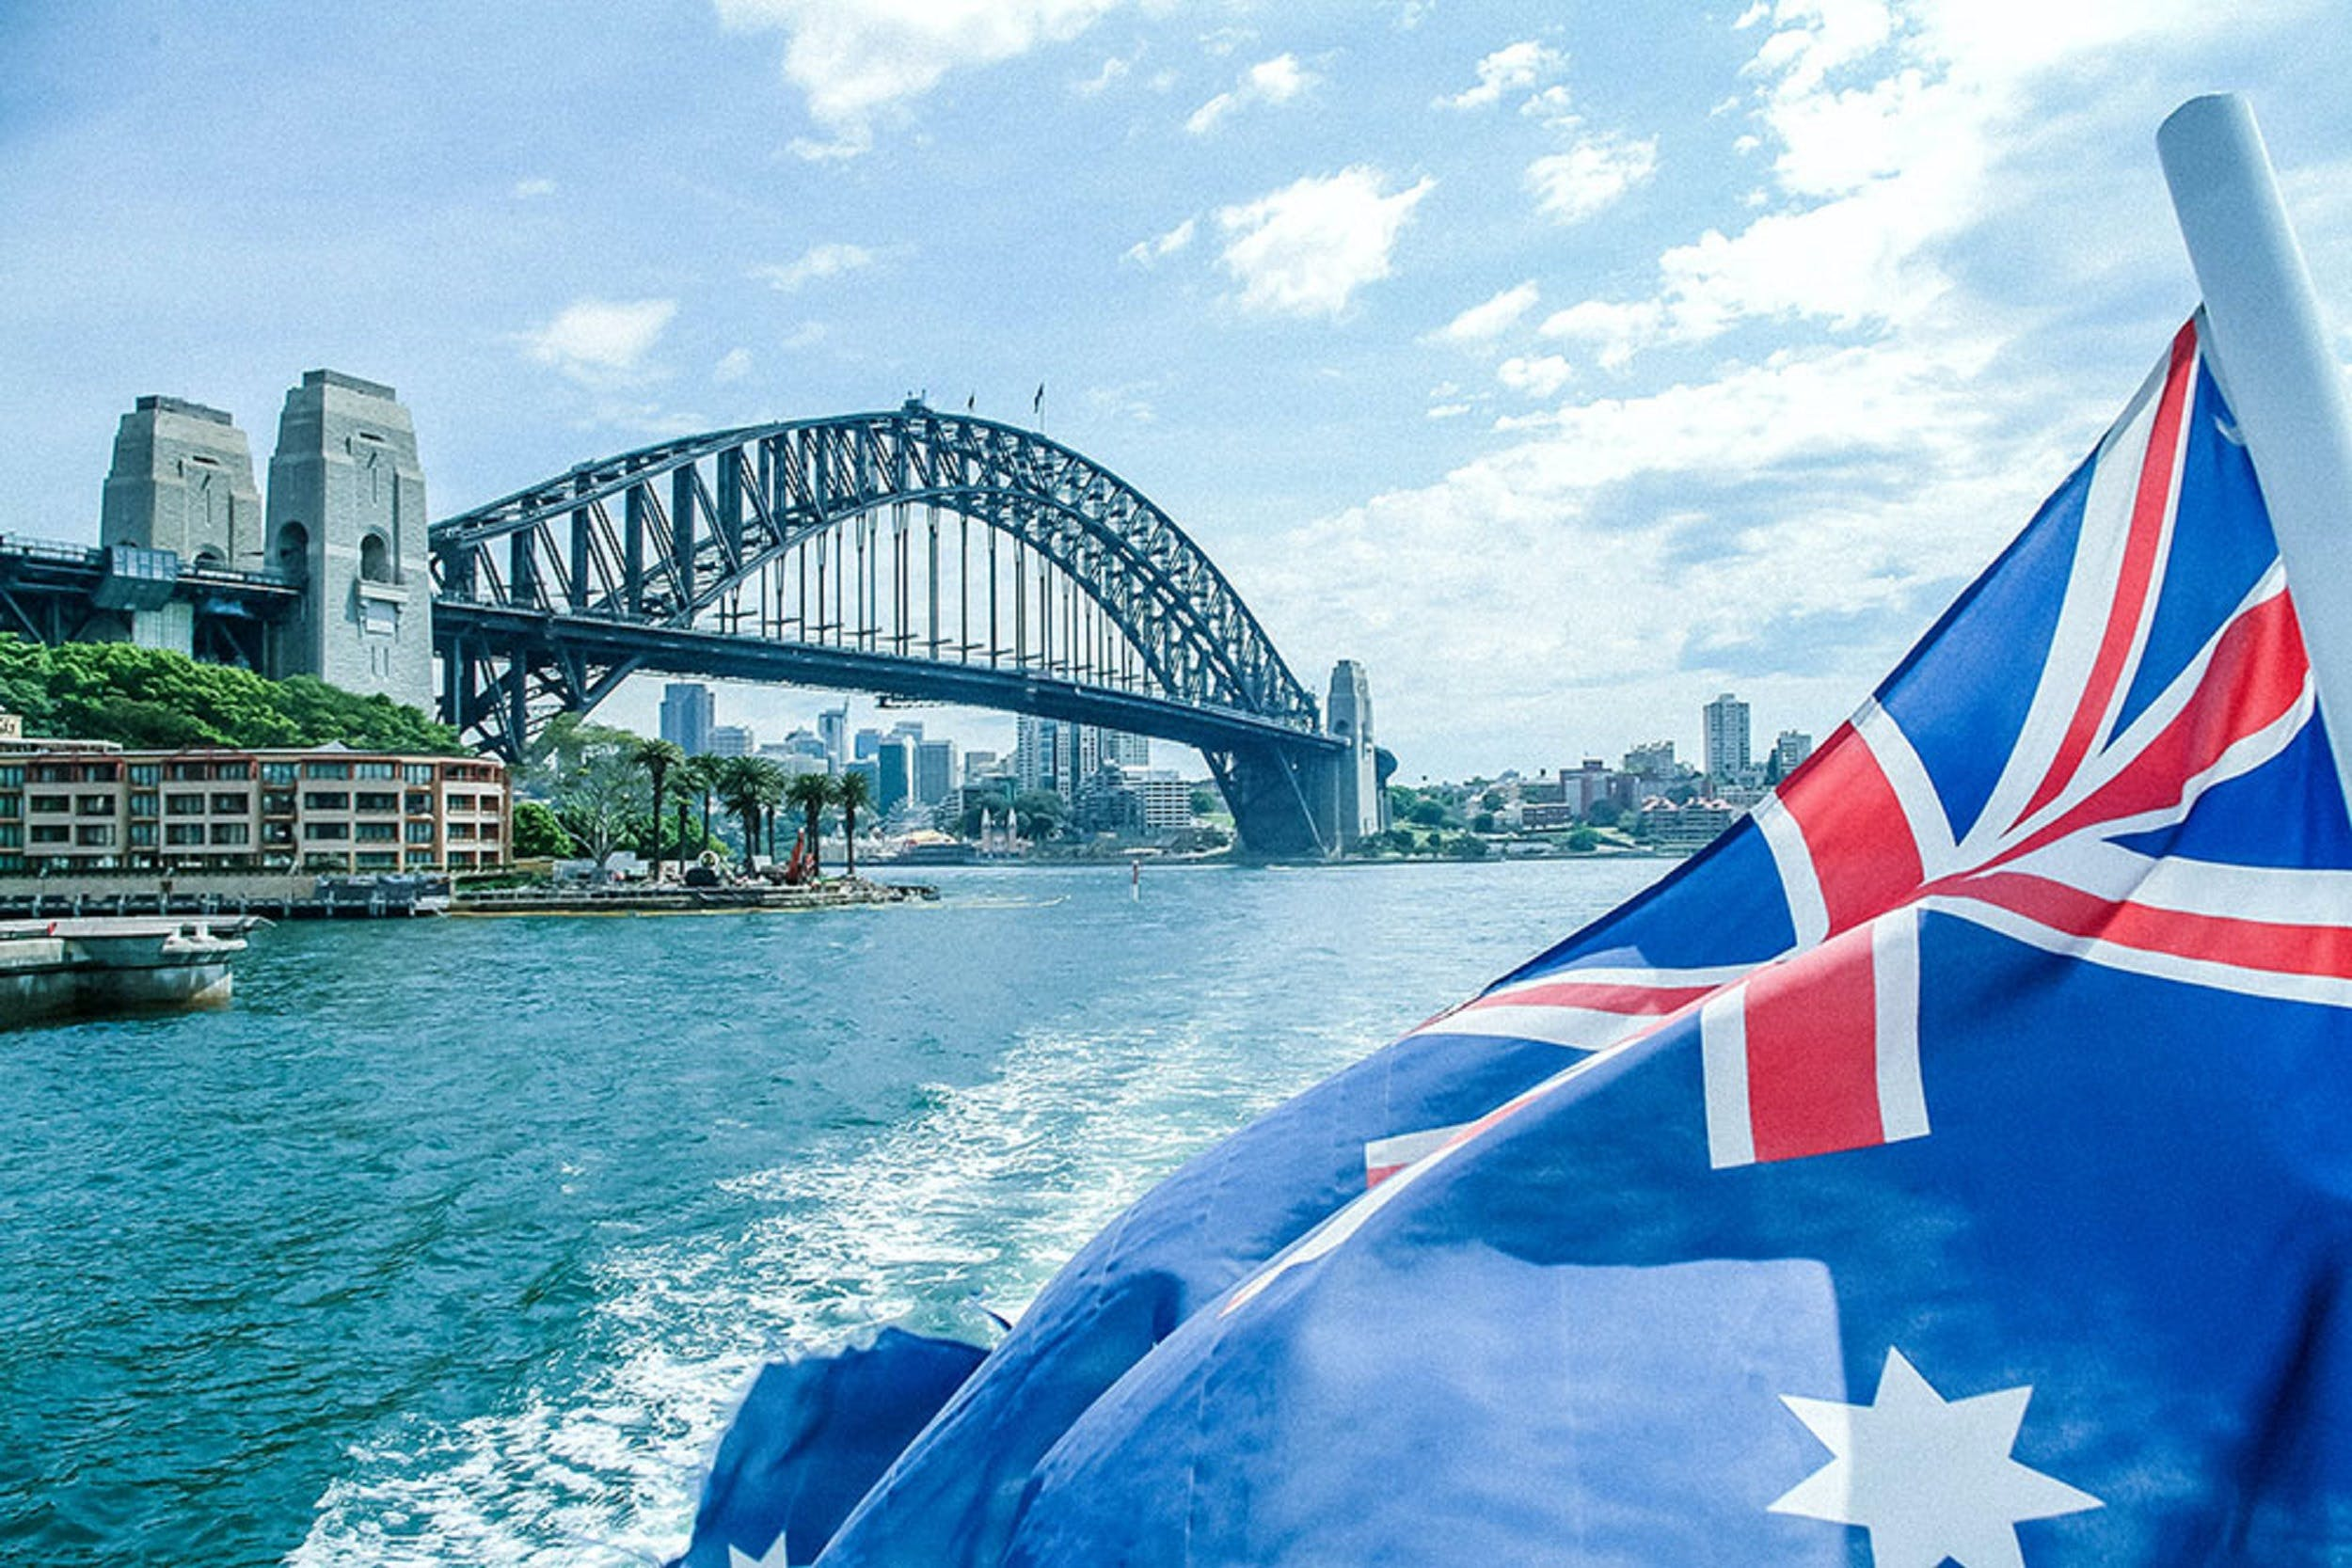 Australia Day Lunch and Dinner Cruises On Sydney Harbour with Sydney Showboats - Pubs Perth